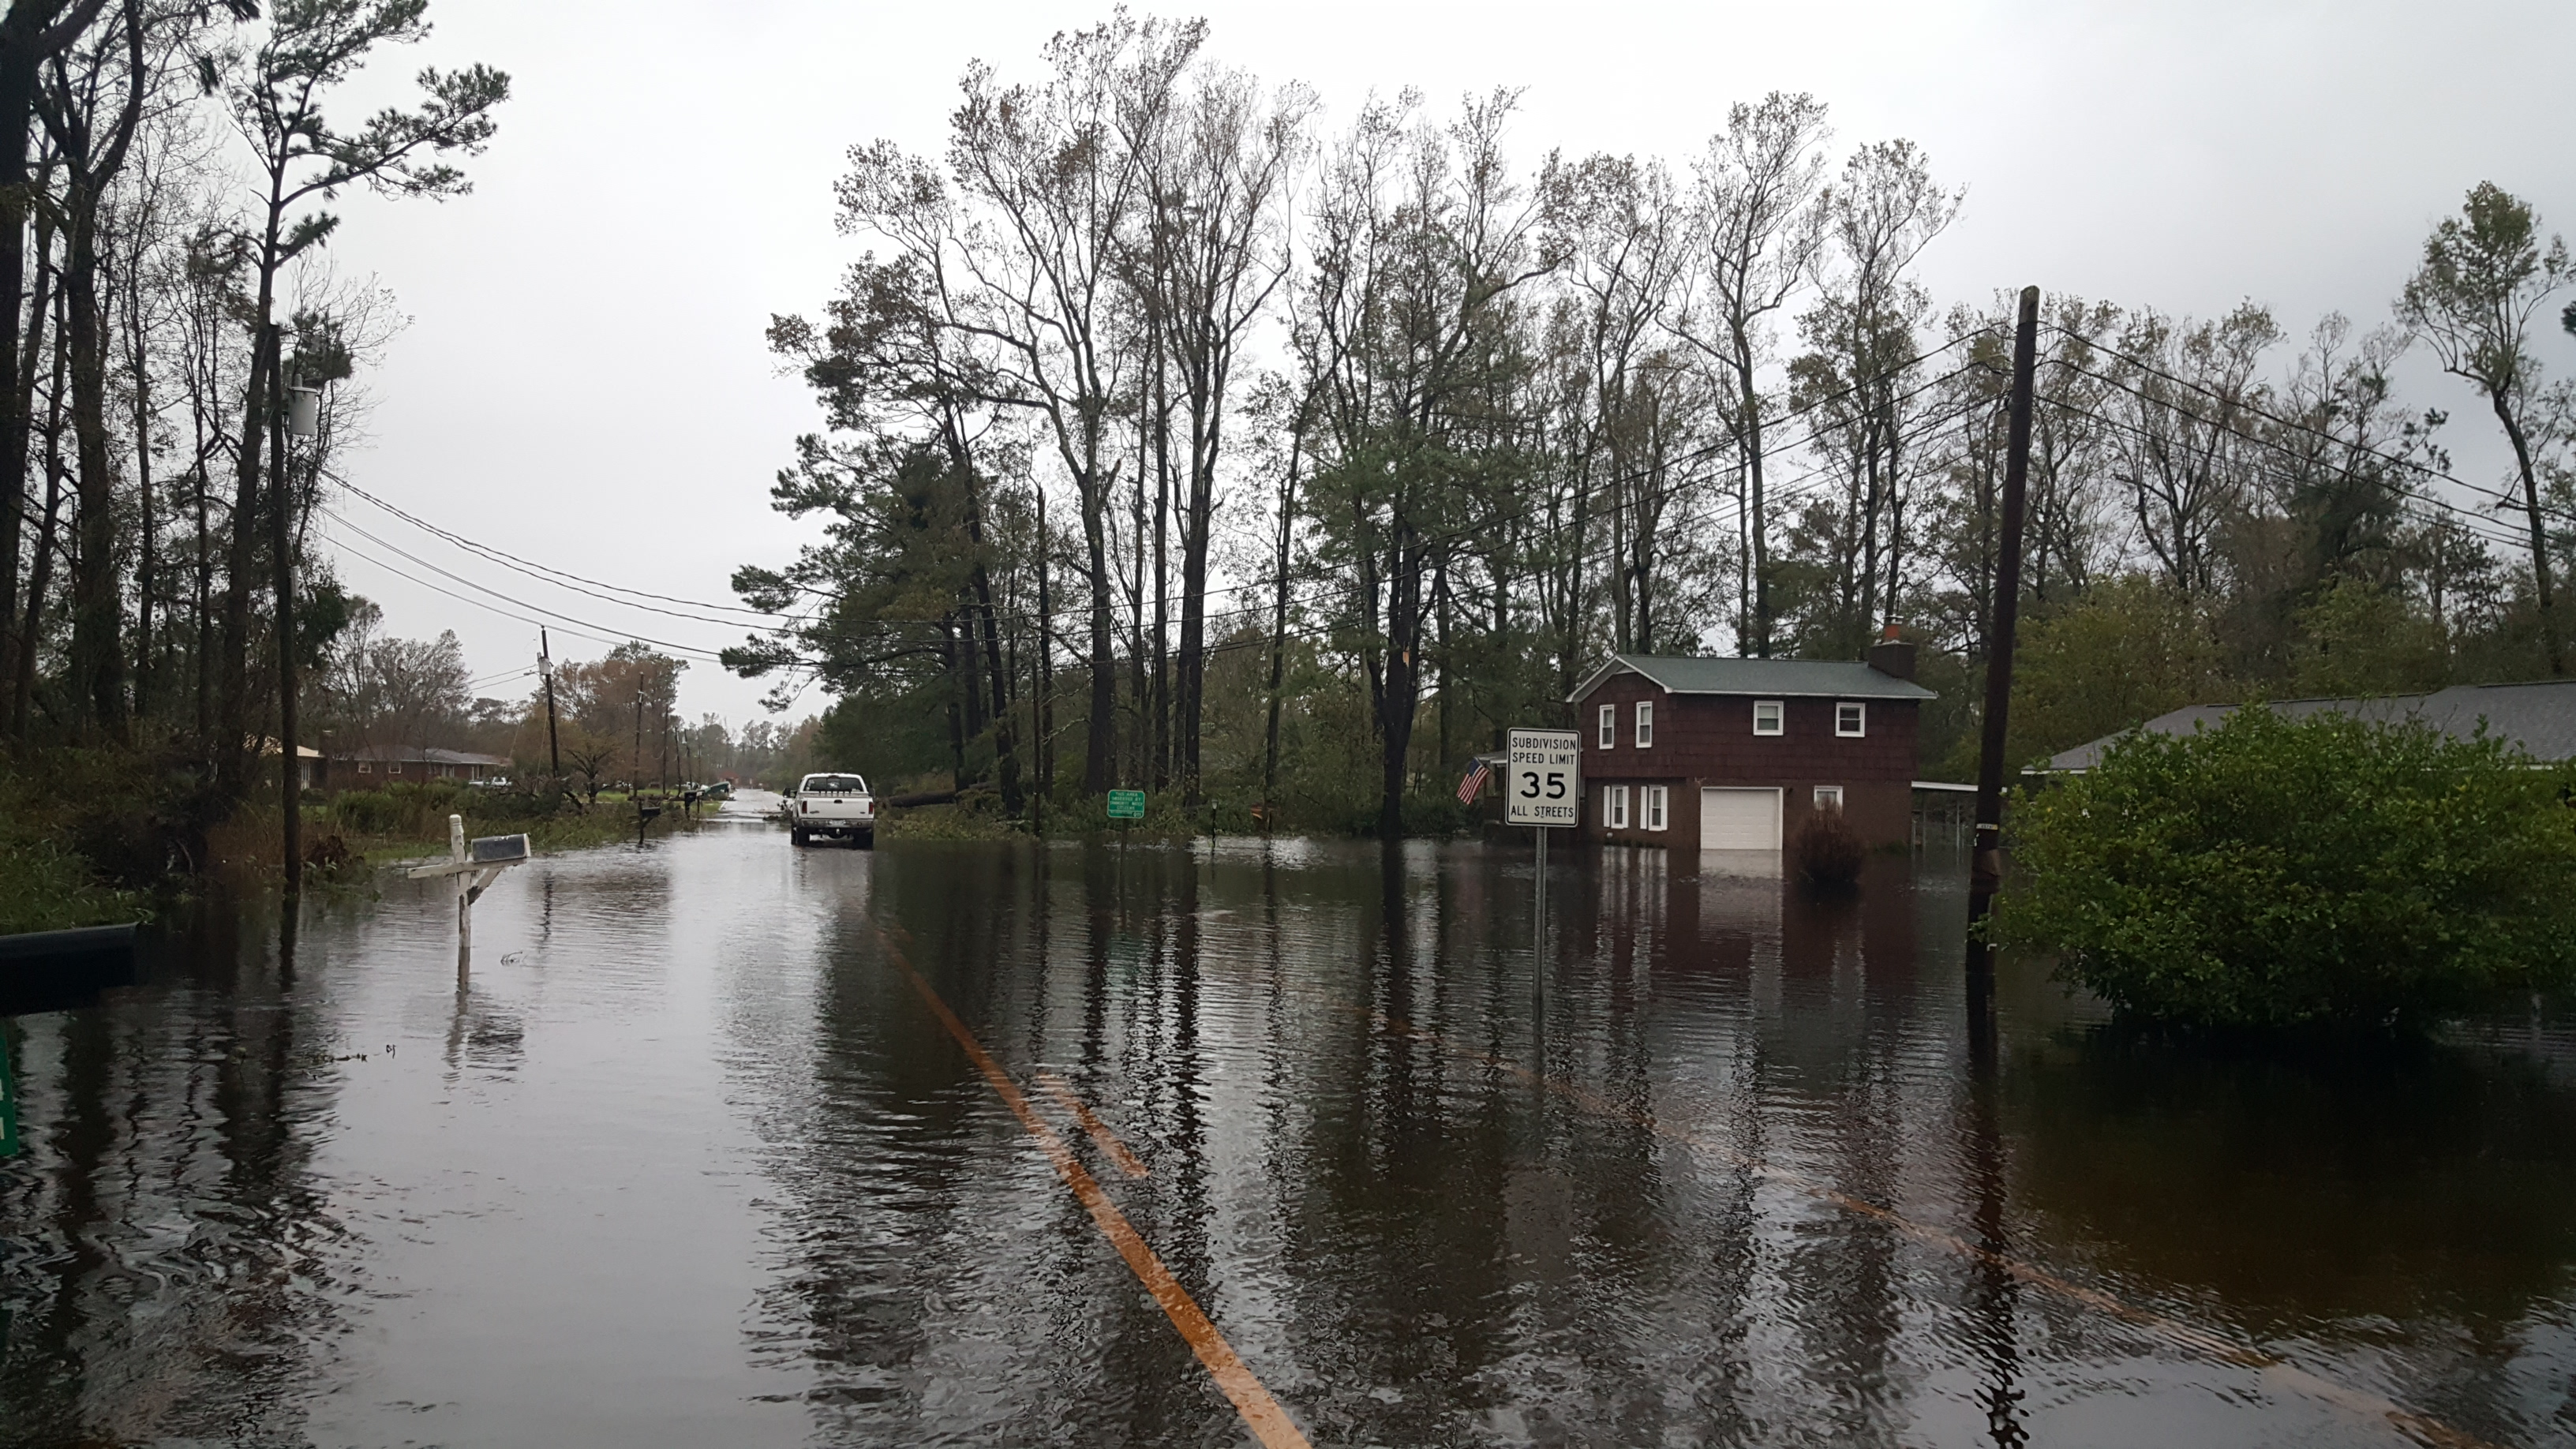 Flooding affected Heritage Park Drive off Blue Clay Road near the ILM Airport for days after Hurricane Florence. (Photo credit: Vicky Oliva/NWS)